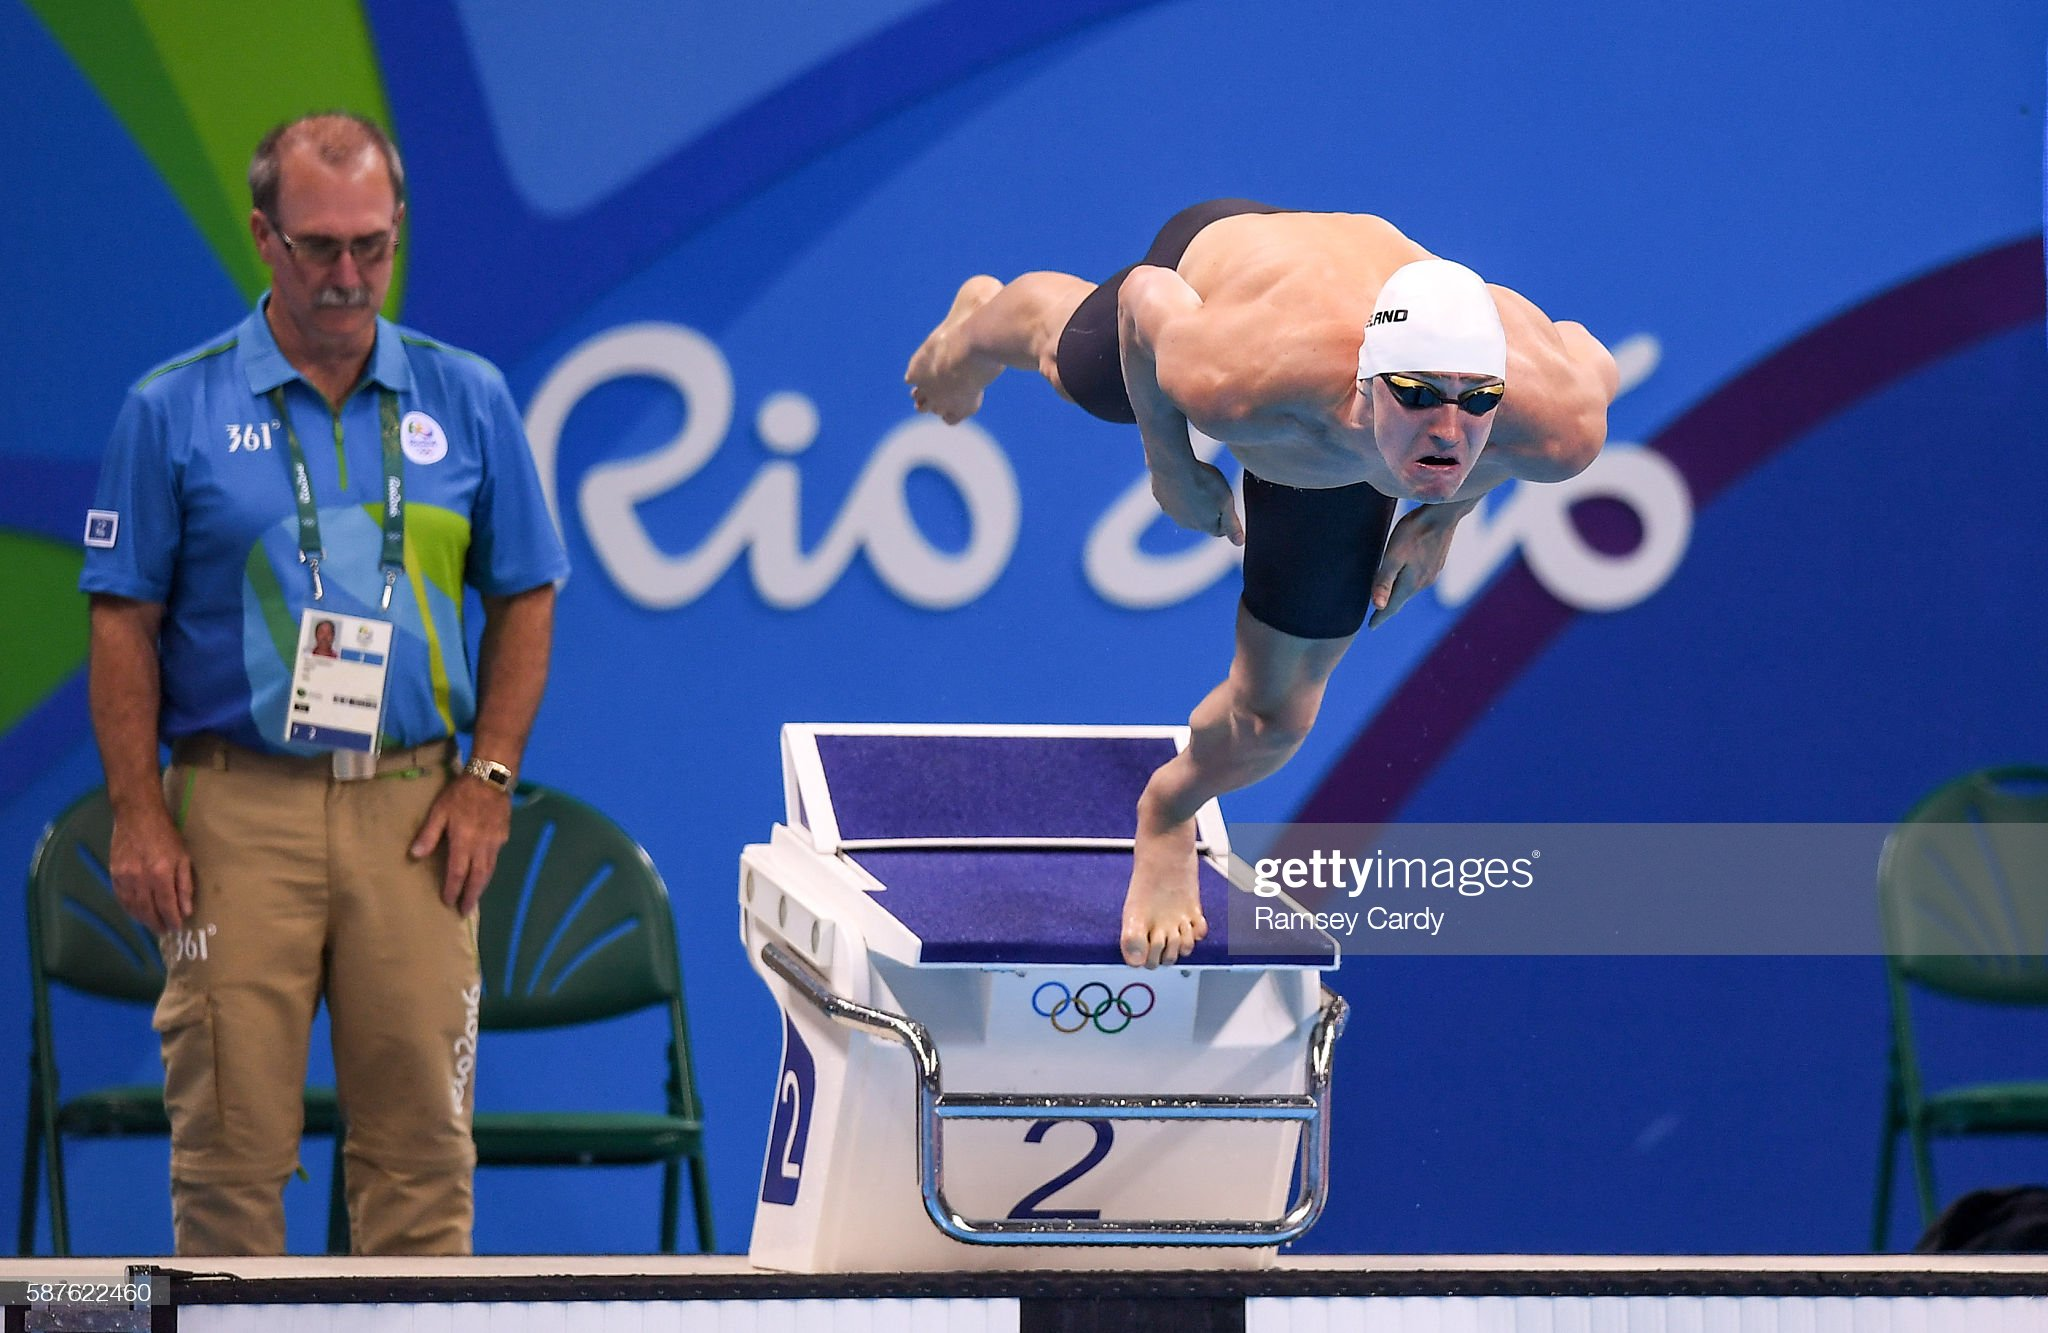 Rio 2016 Olympic Games - Day 4 - Swimming : Fotografía de noticias